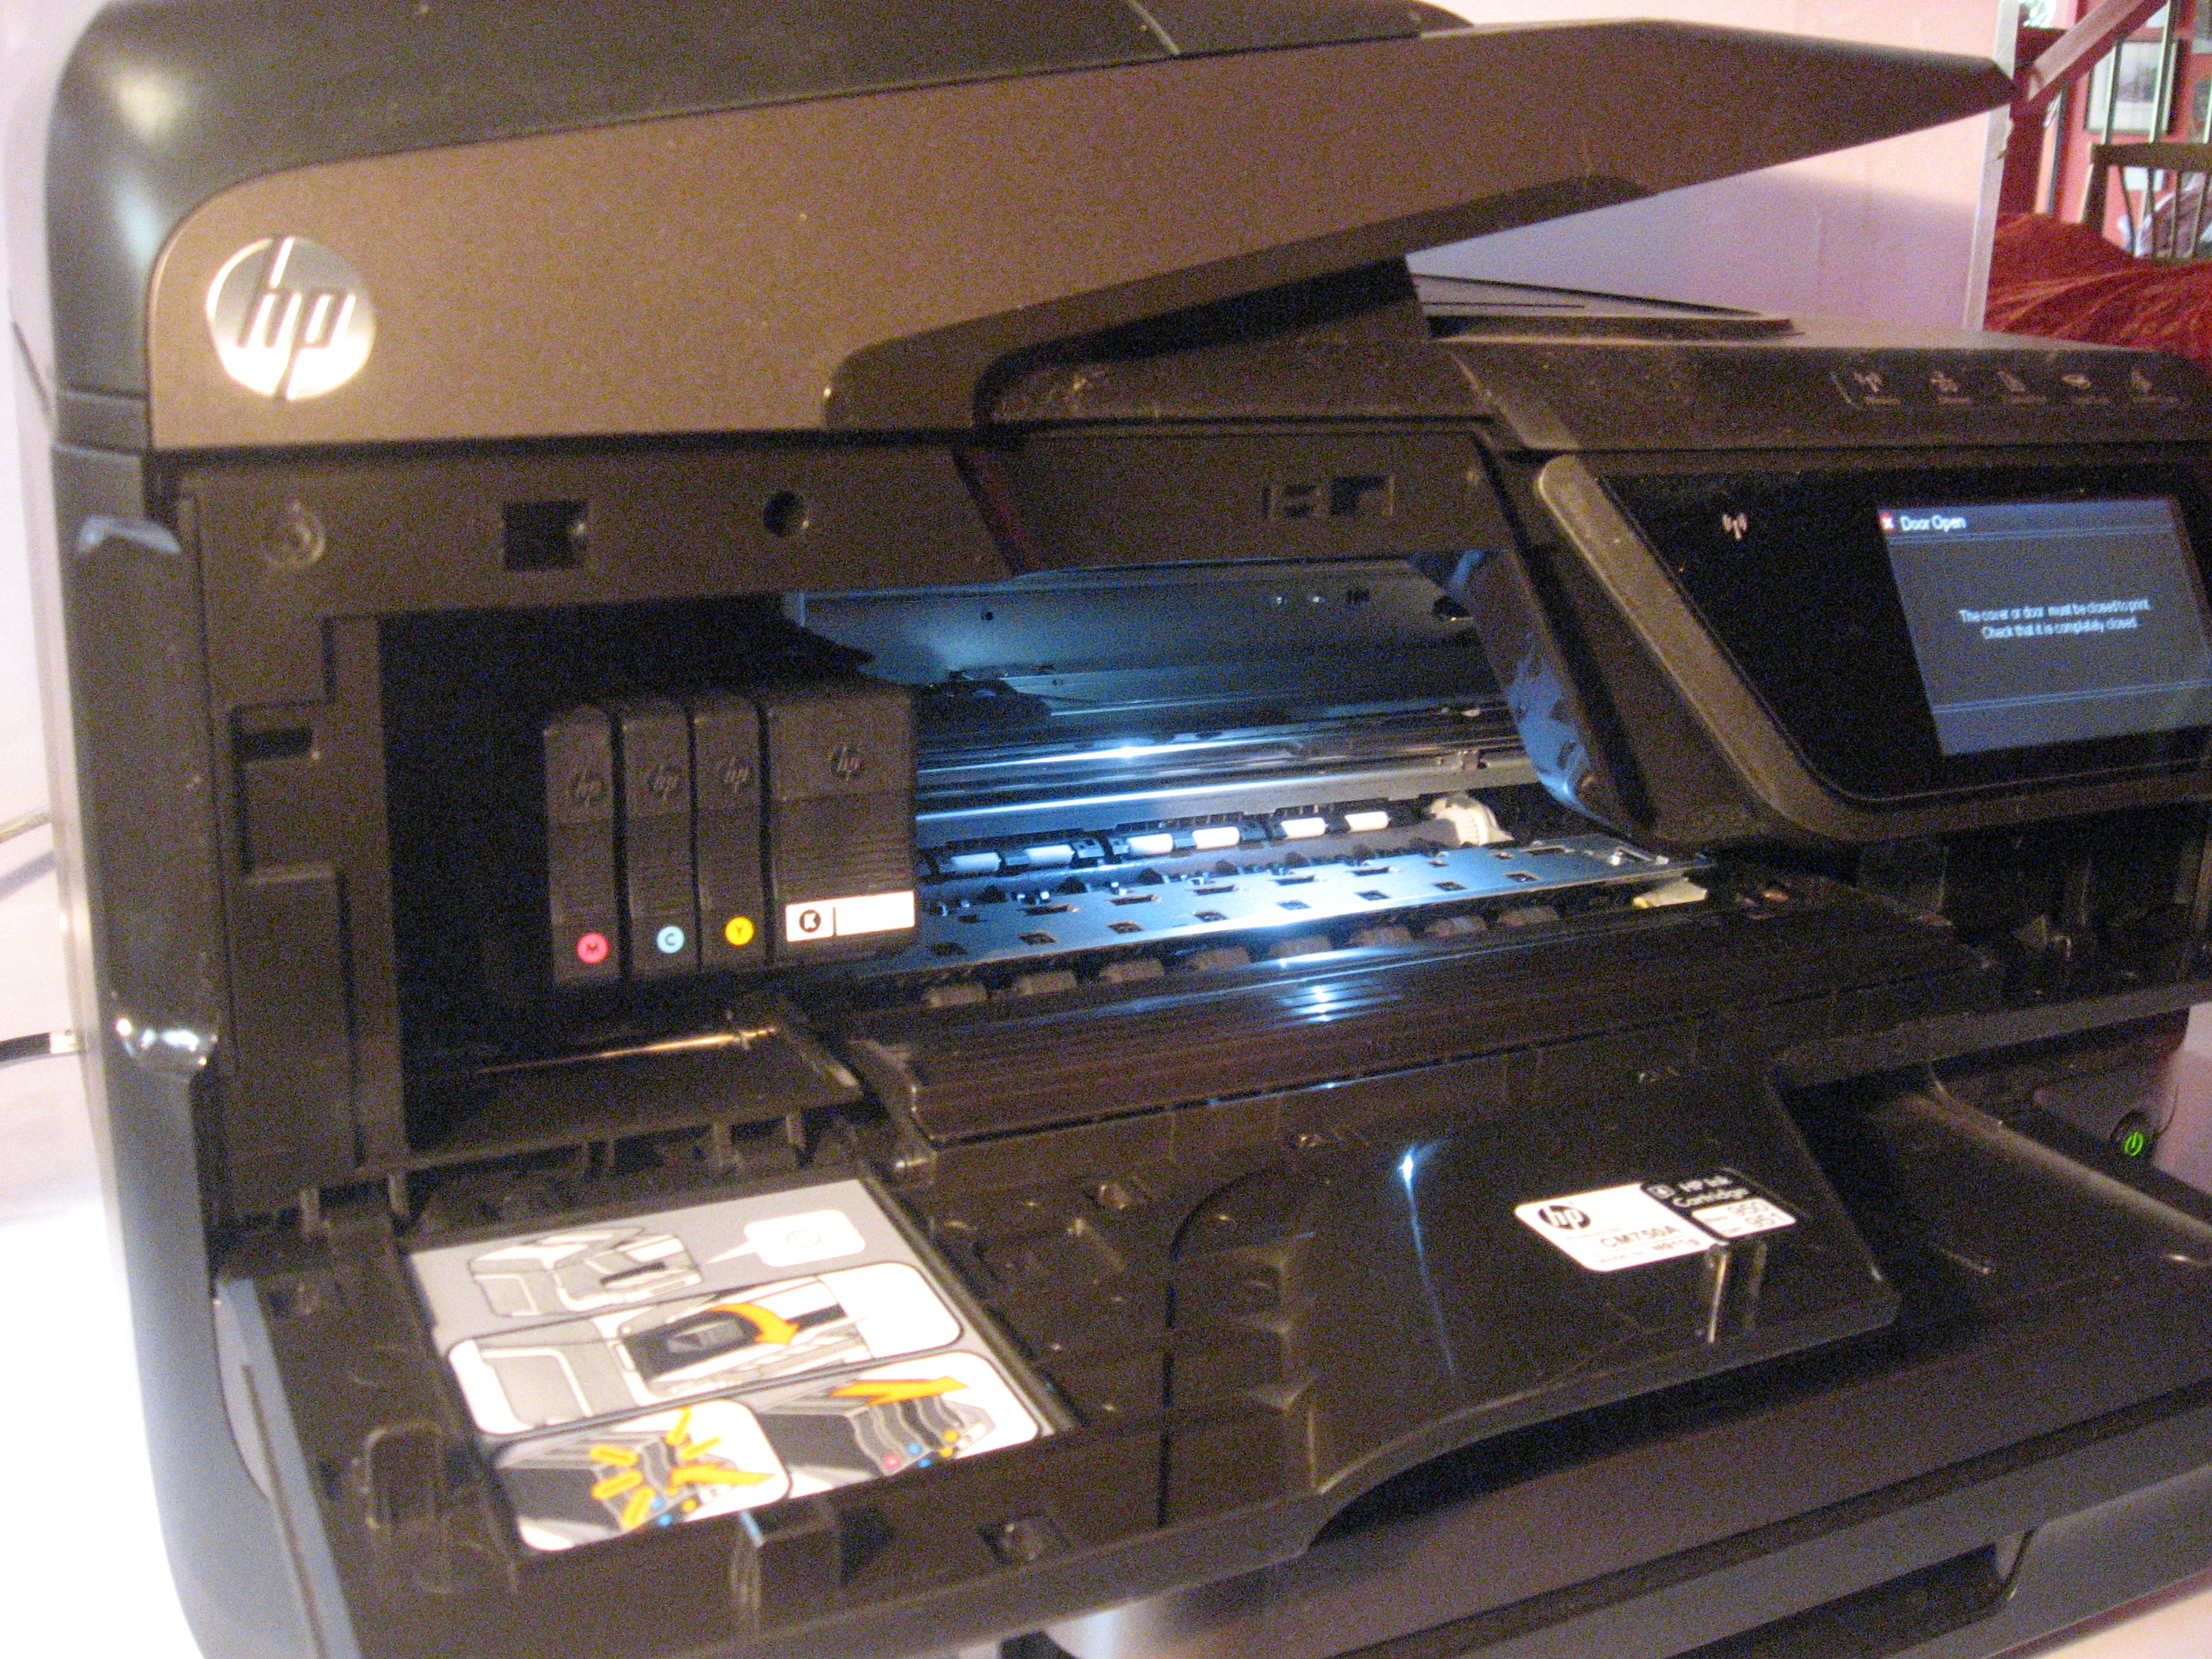 HP OfficeJet Pro 8600a Plus all-in-one printer illuminated mechanism bay